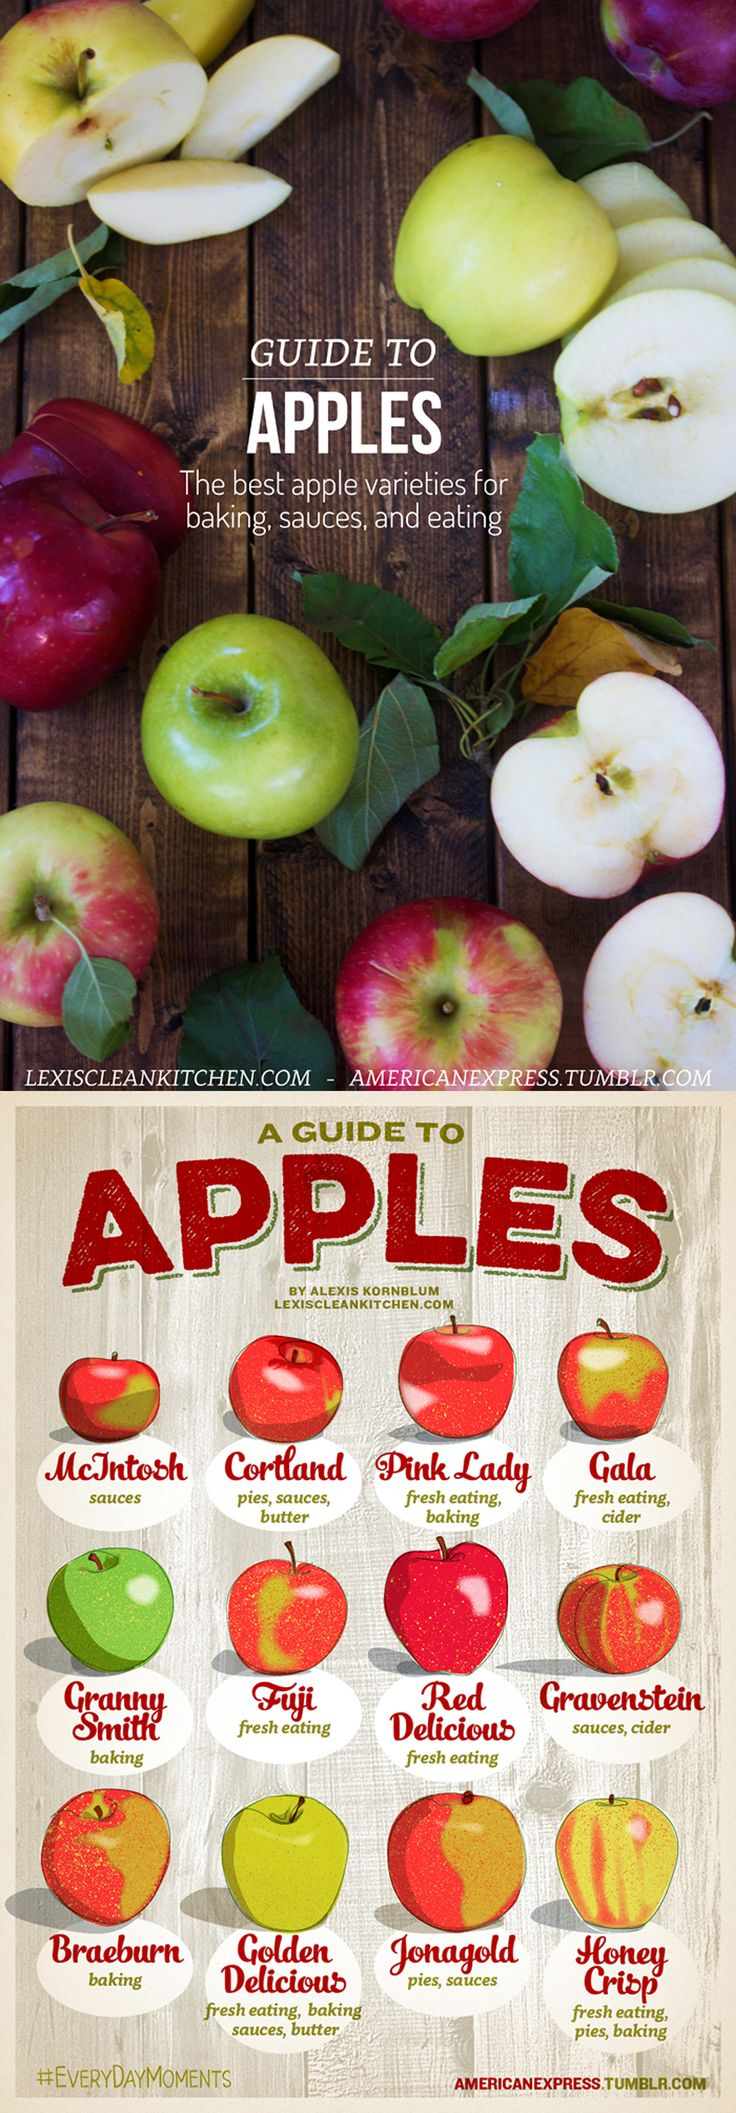 Guide to #APPLES! The best apples for baking, eating, sauces, and apple butter!